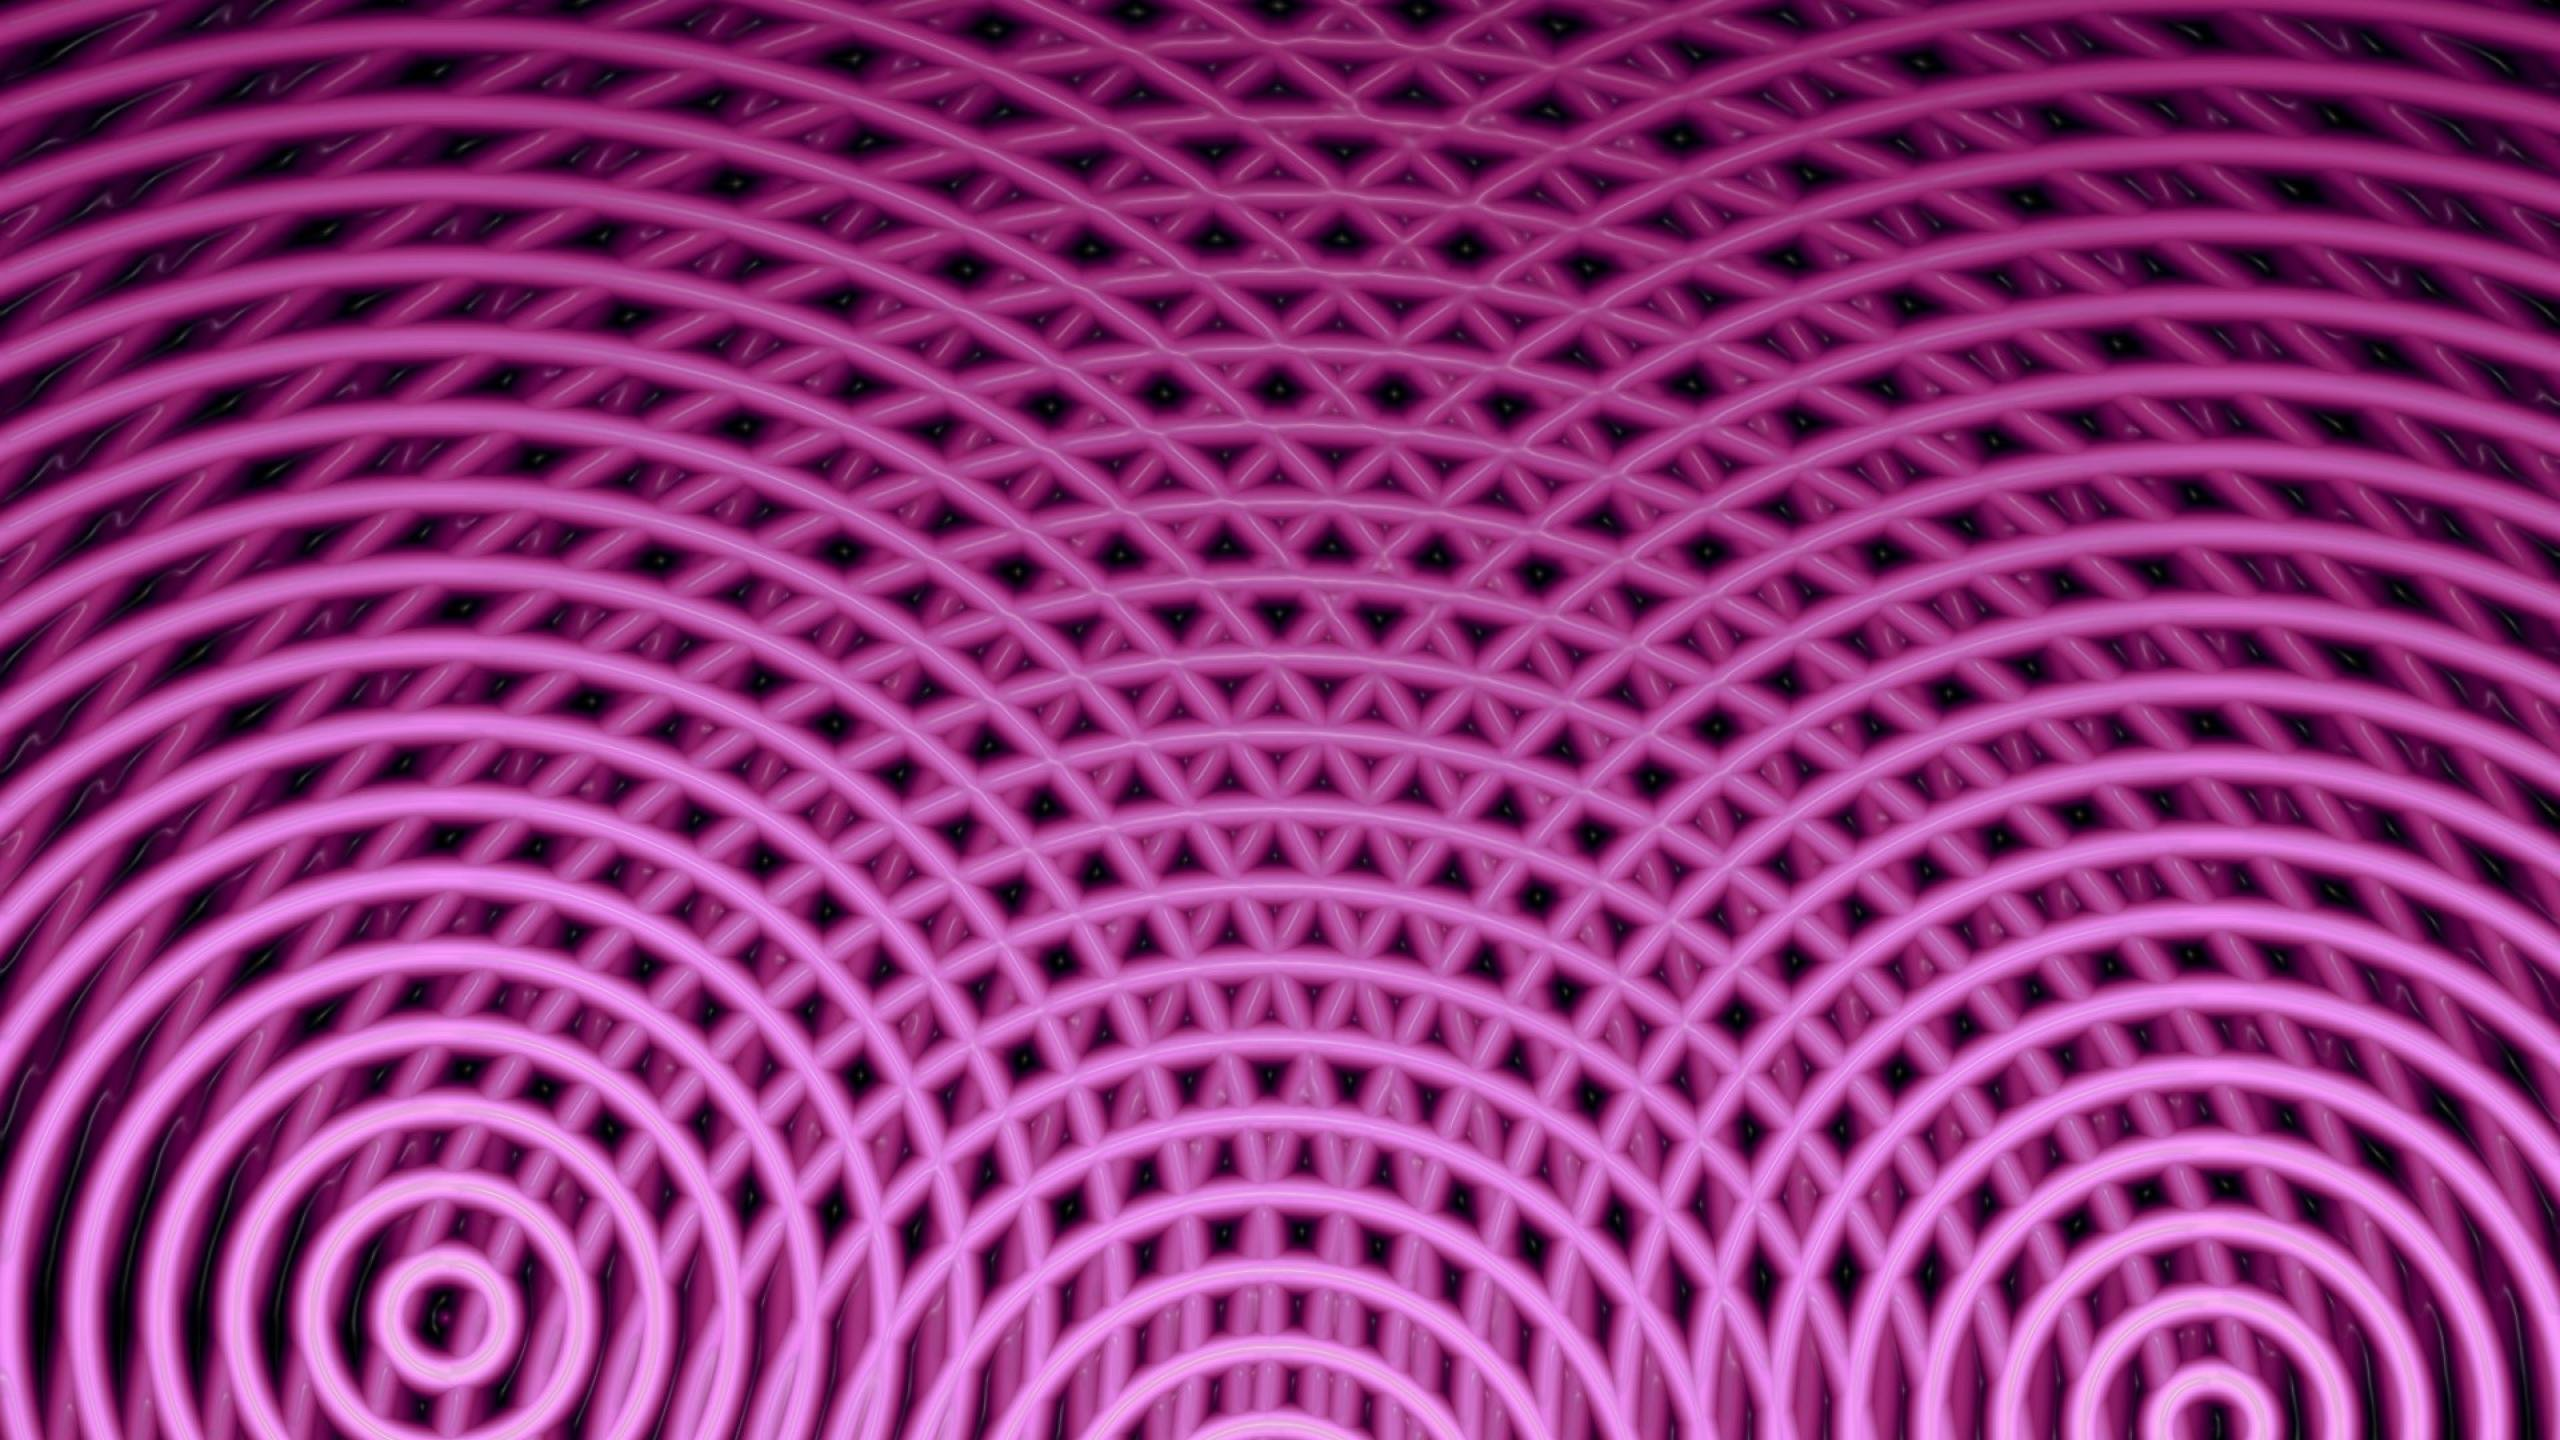 pink abstract design hd wallpaper background 63554